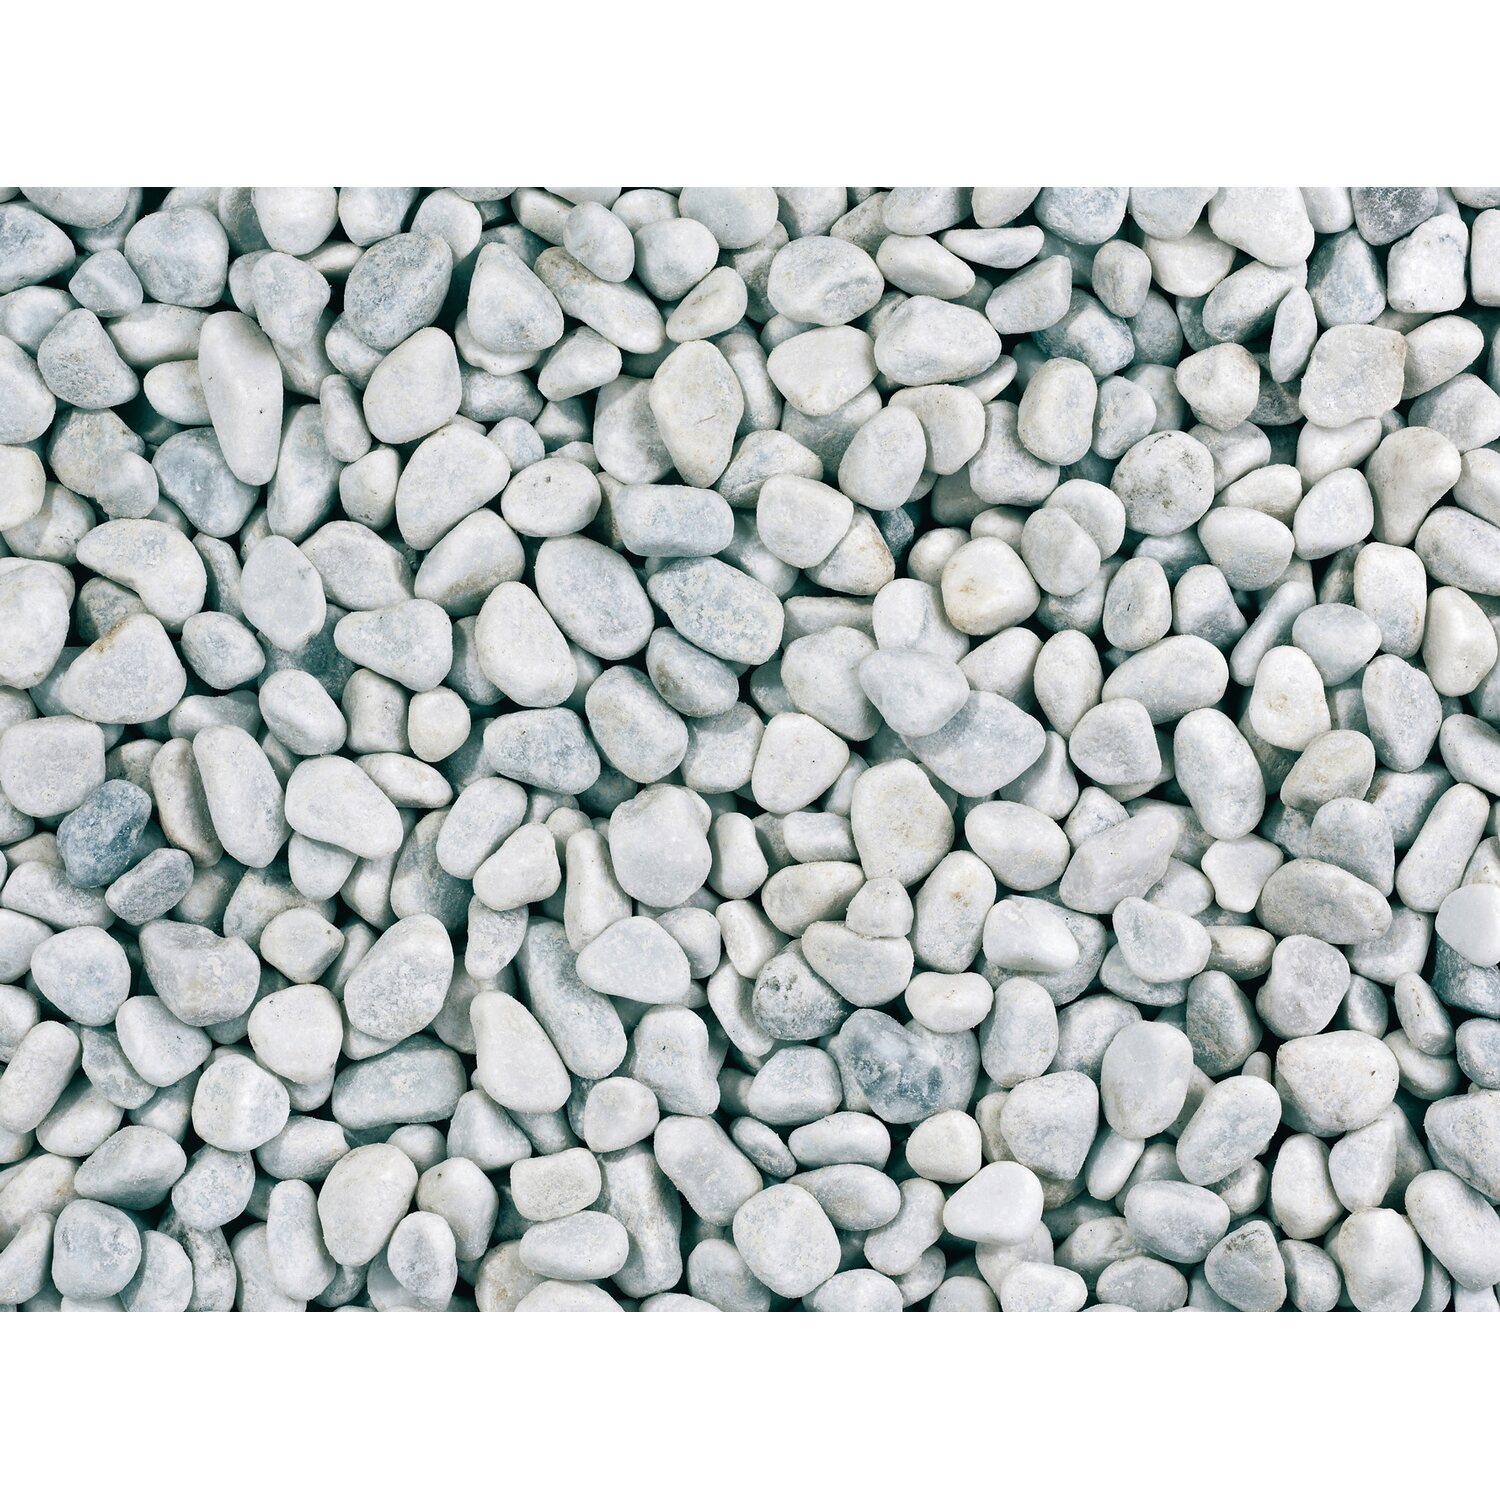 Marmor kies carrara wei 8 mm 16 mm 15 kg sack kaufen for Anthrazit kieselsteine